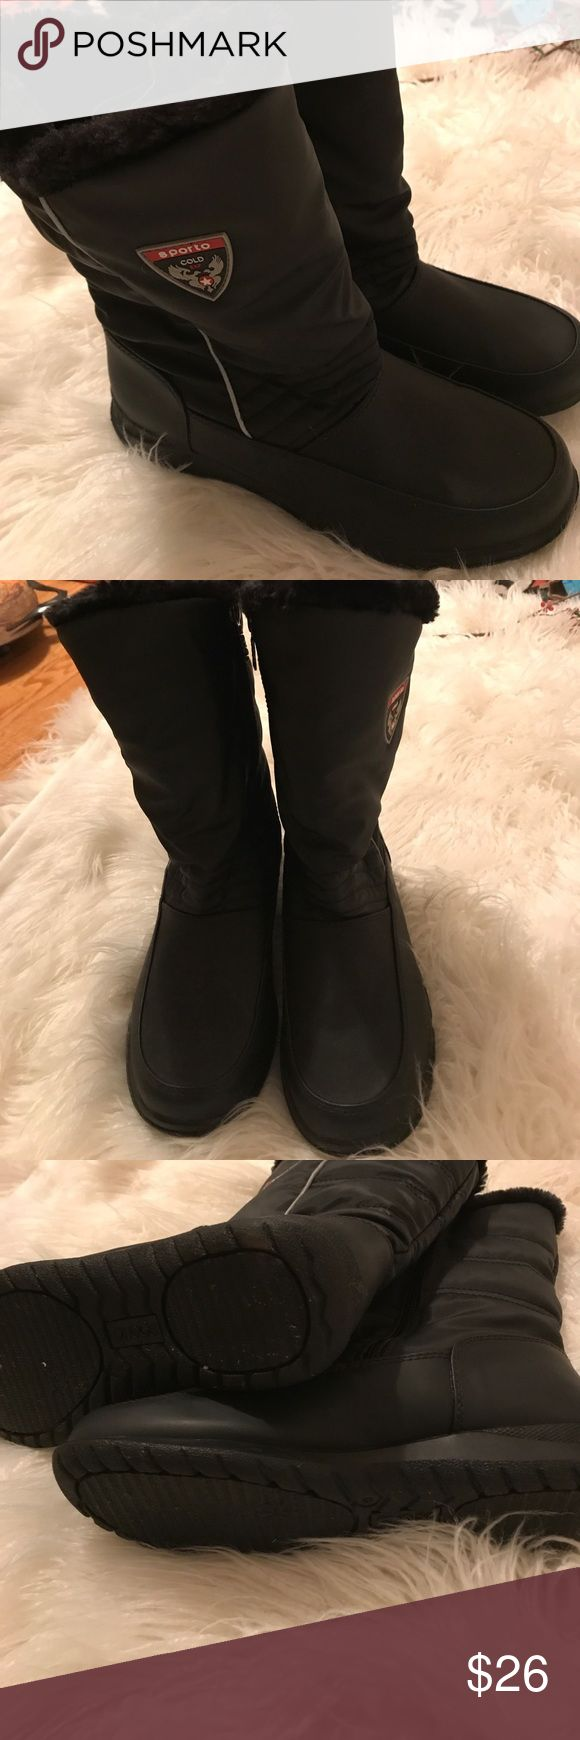 Sporto boots like new Sporto boots like new, One twice maximum. They are a size 9 medium. They will surely keep your feet warm with a black fur lining, yas002 Sporto Shoes Winter & Rain Boots